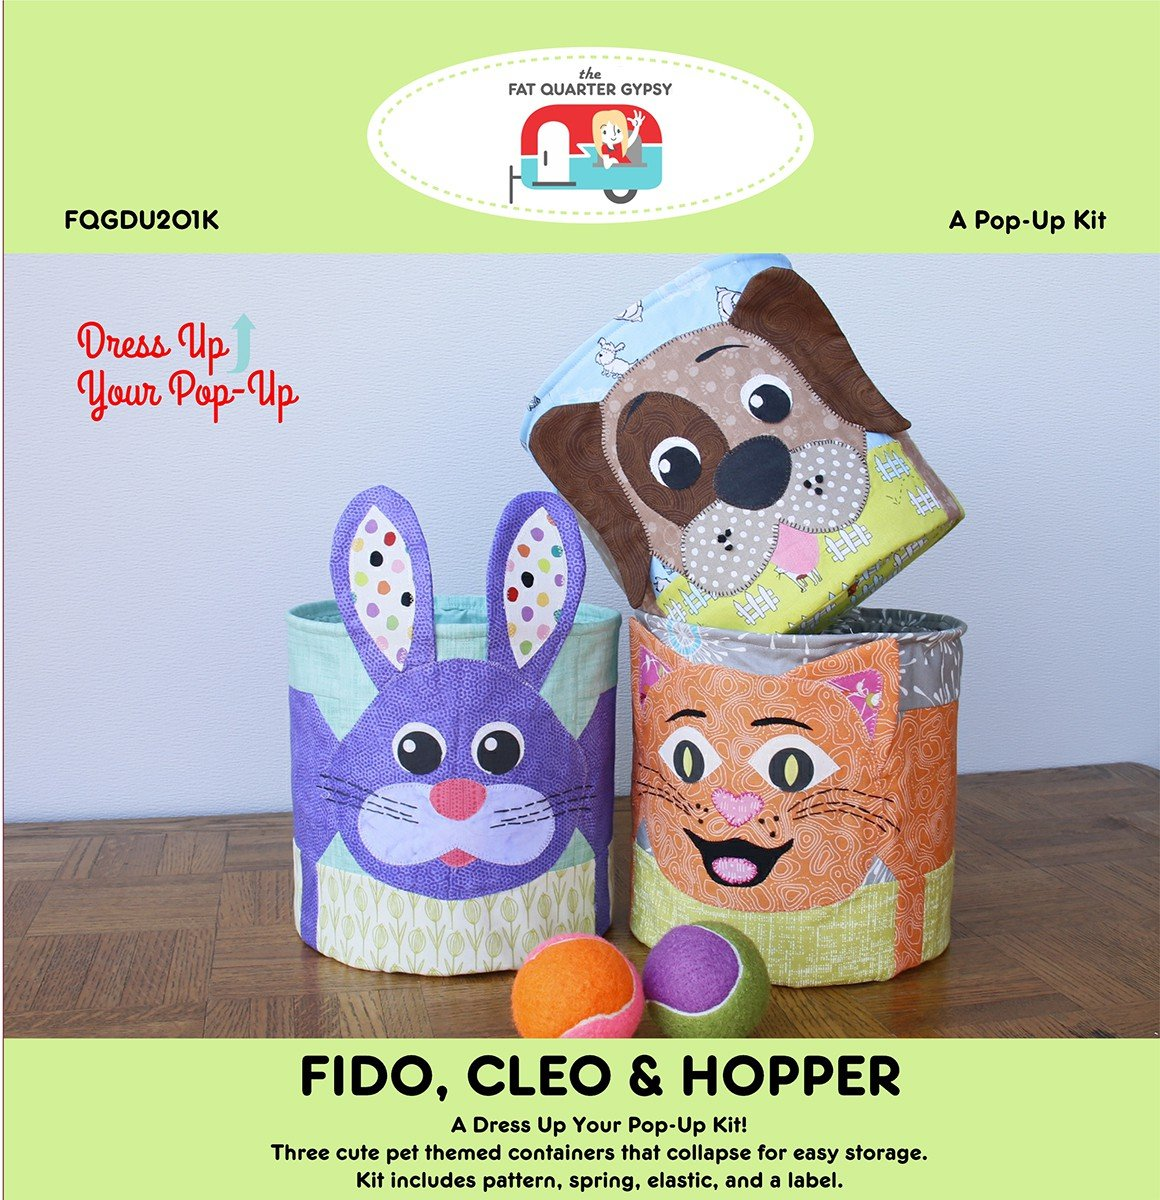 Fido Cleo & Hopper Kit